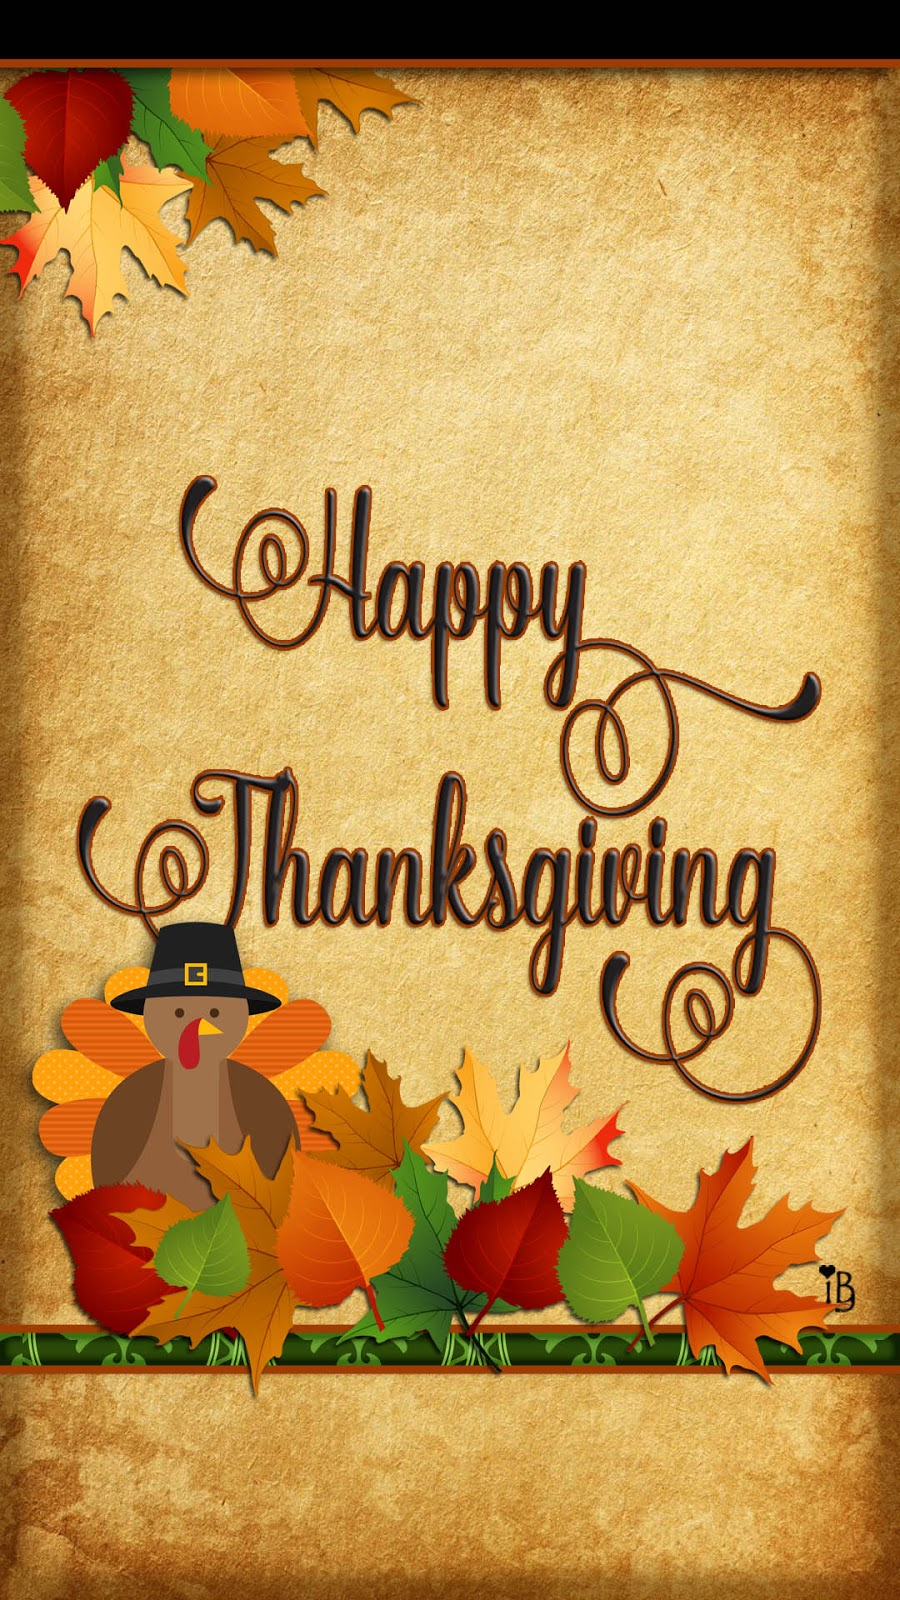 Happy Thanksgiving Wallpaper Smartphone Kolpaper Awesome Free Hd Wallpapers